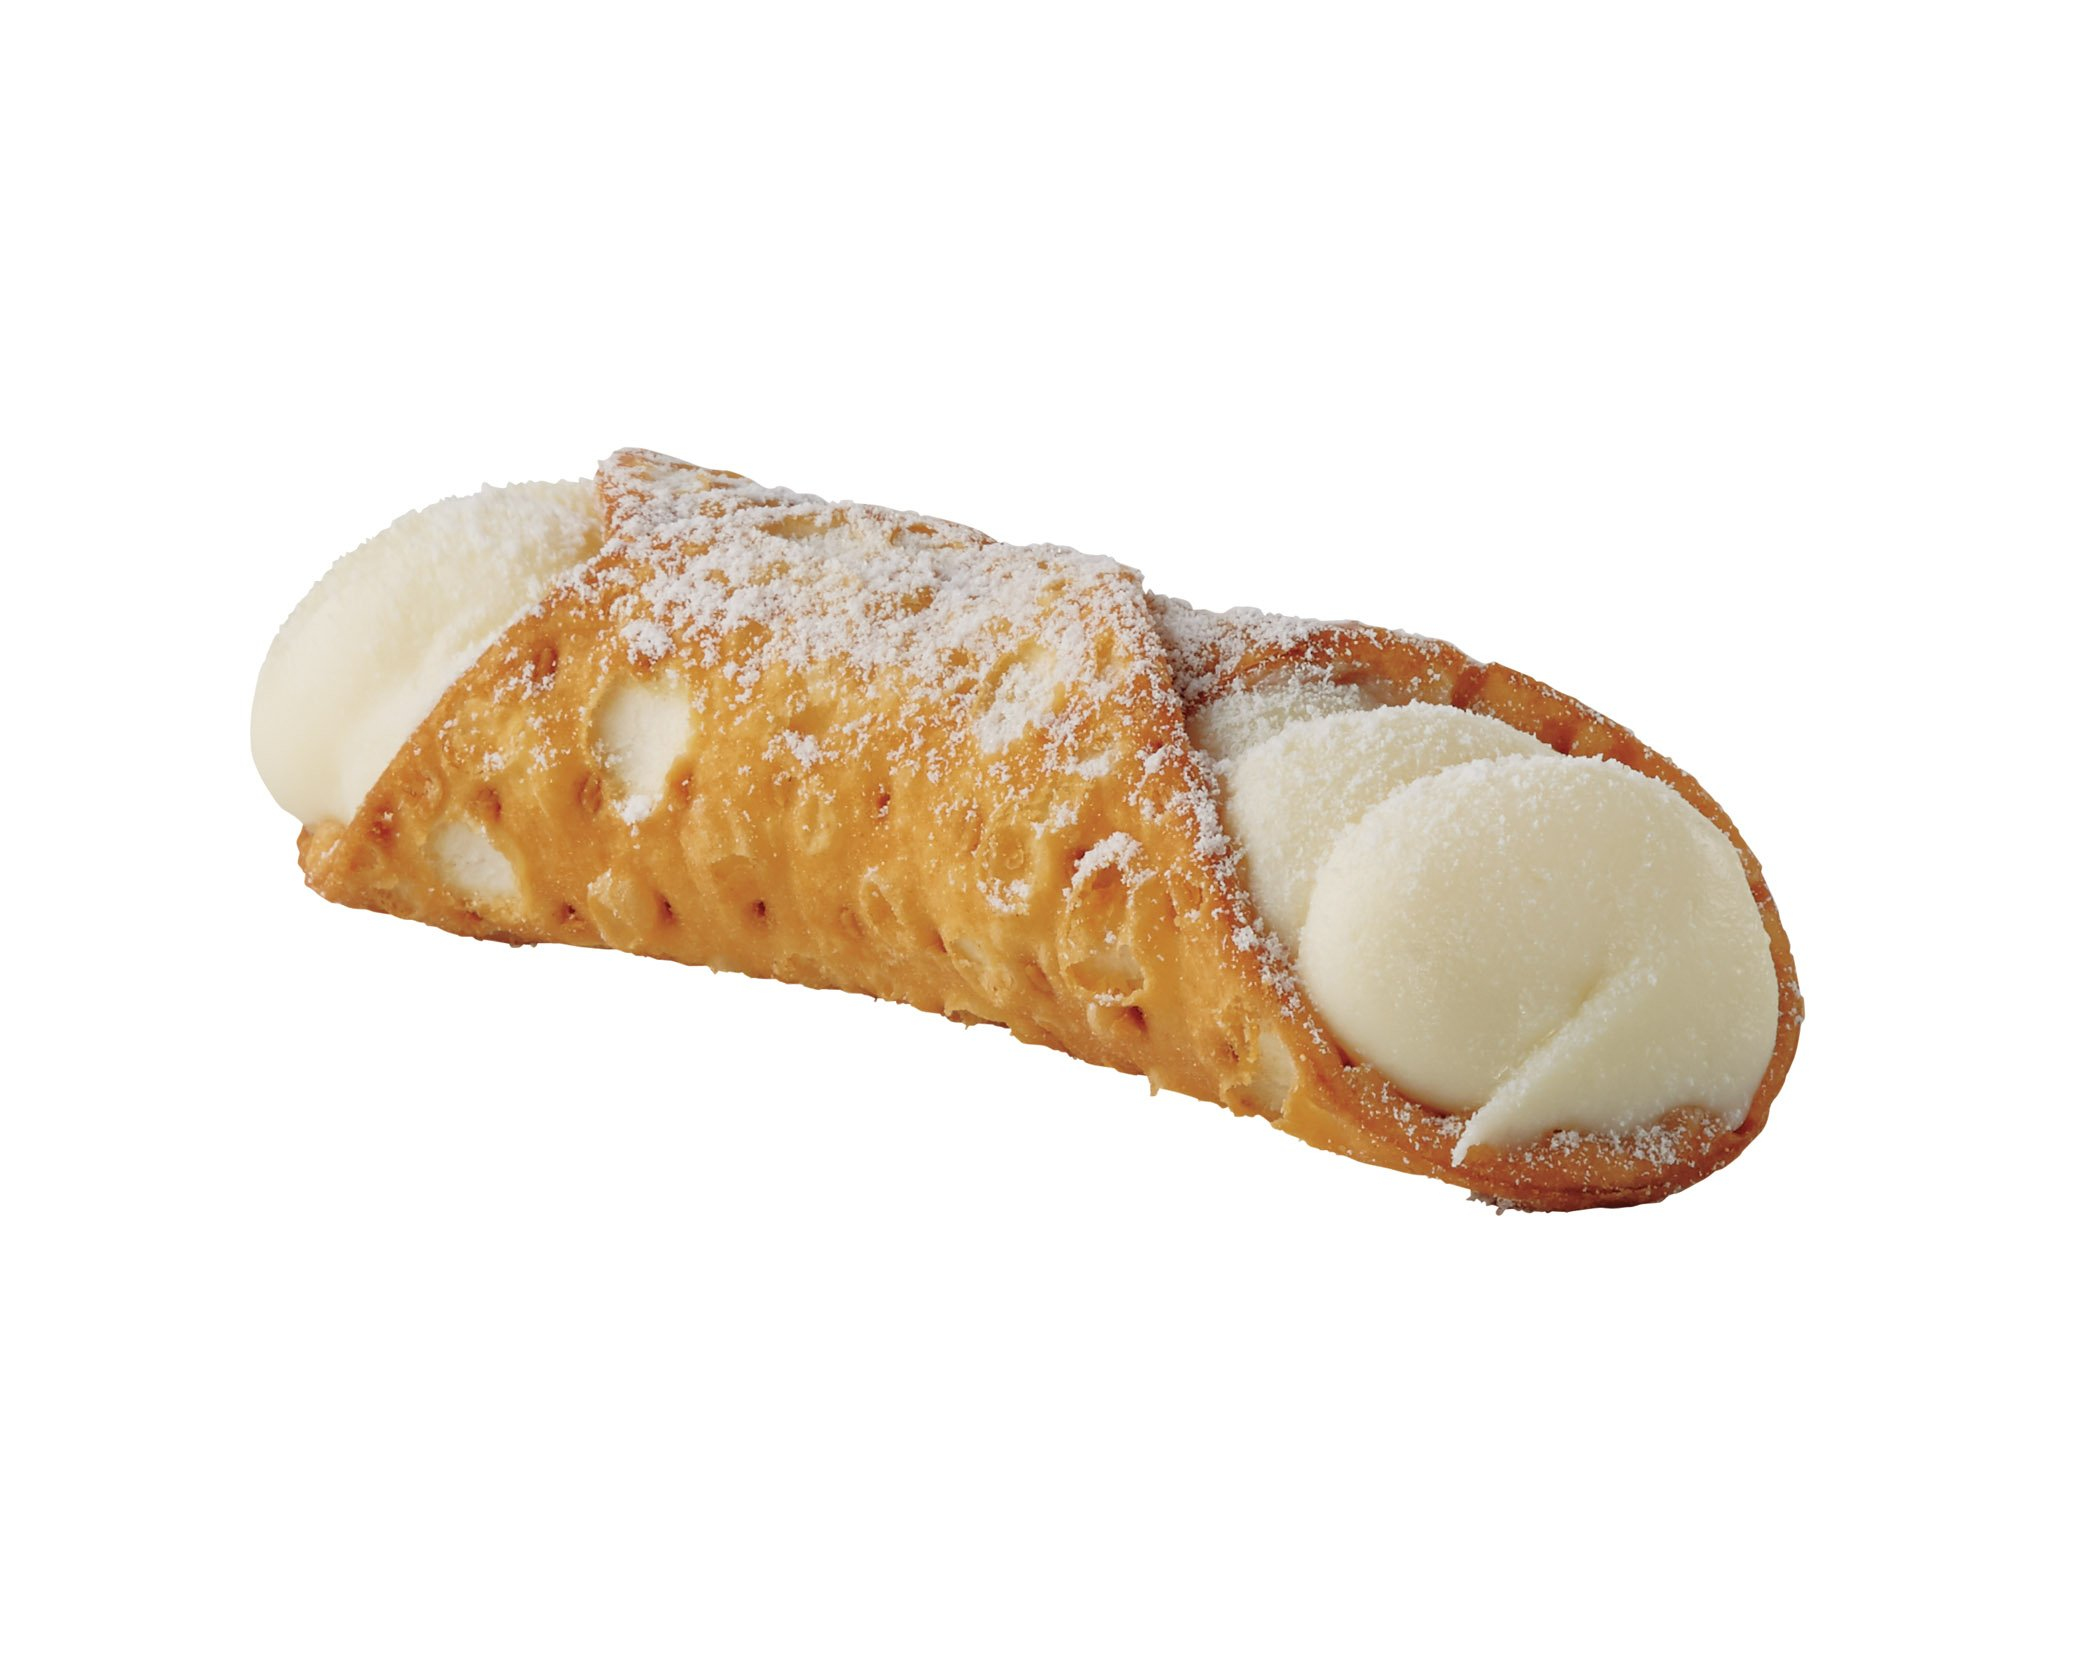 H‑E‑B Plain Cannoli with Donut Sugar ‑ Shop Gourmet Desserts at HEB